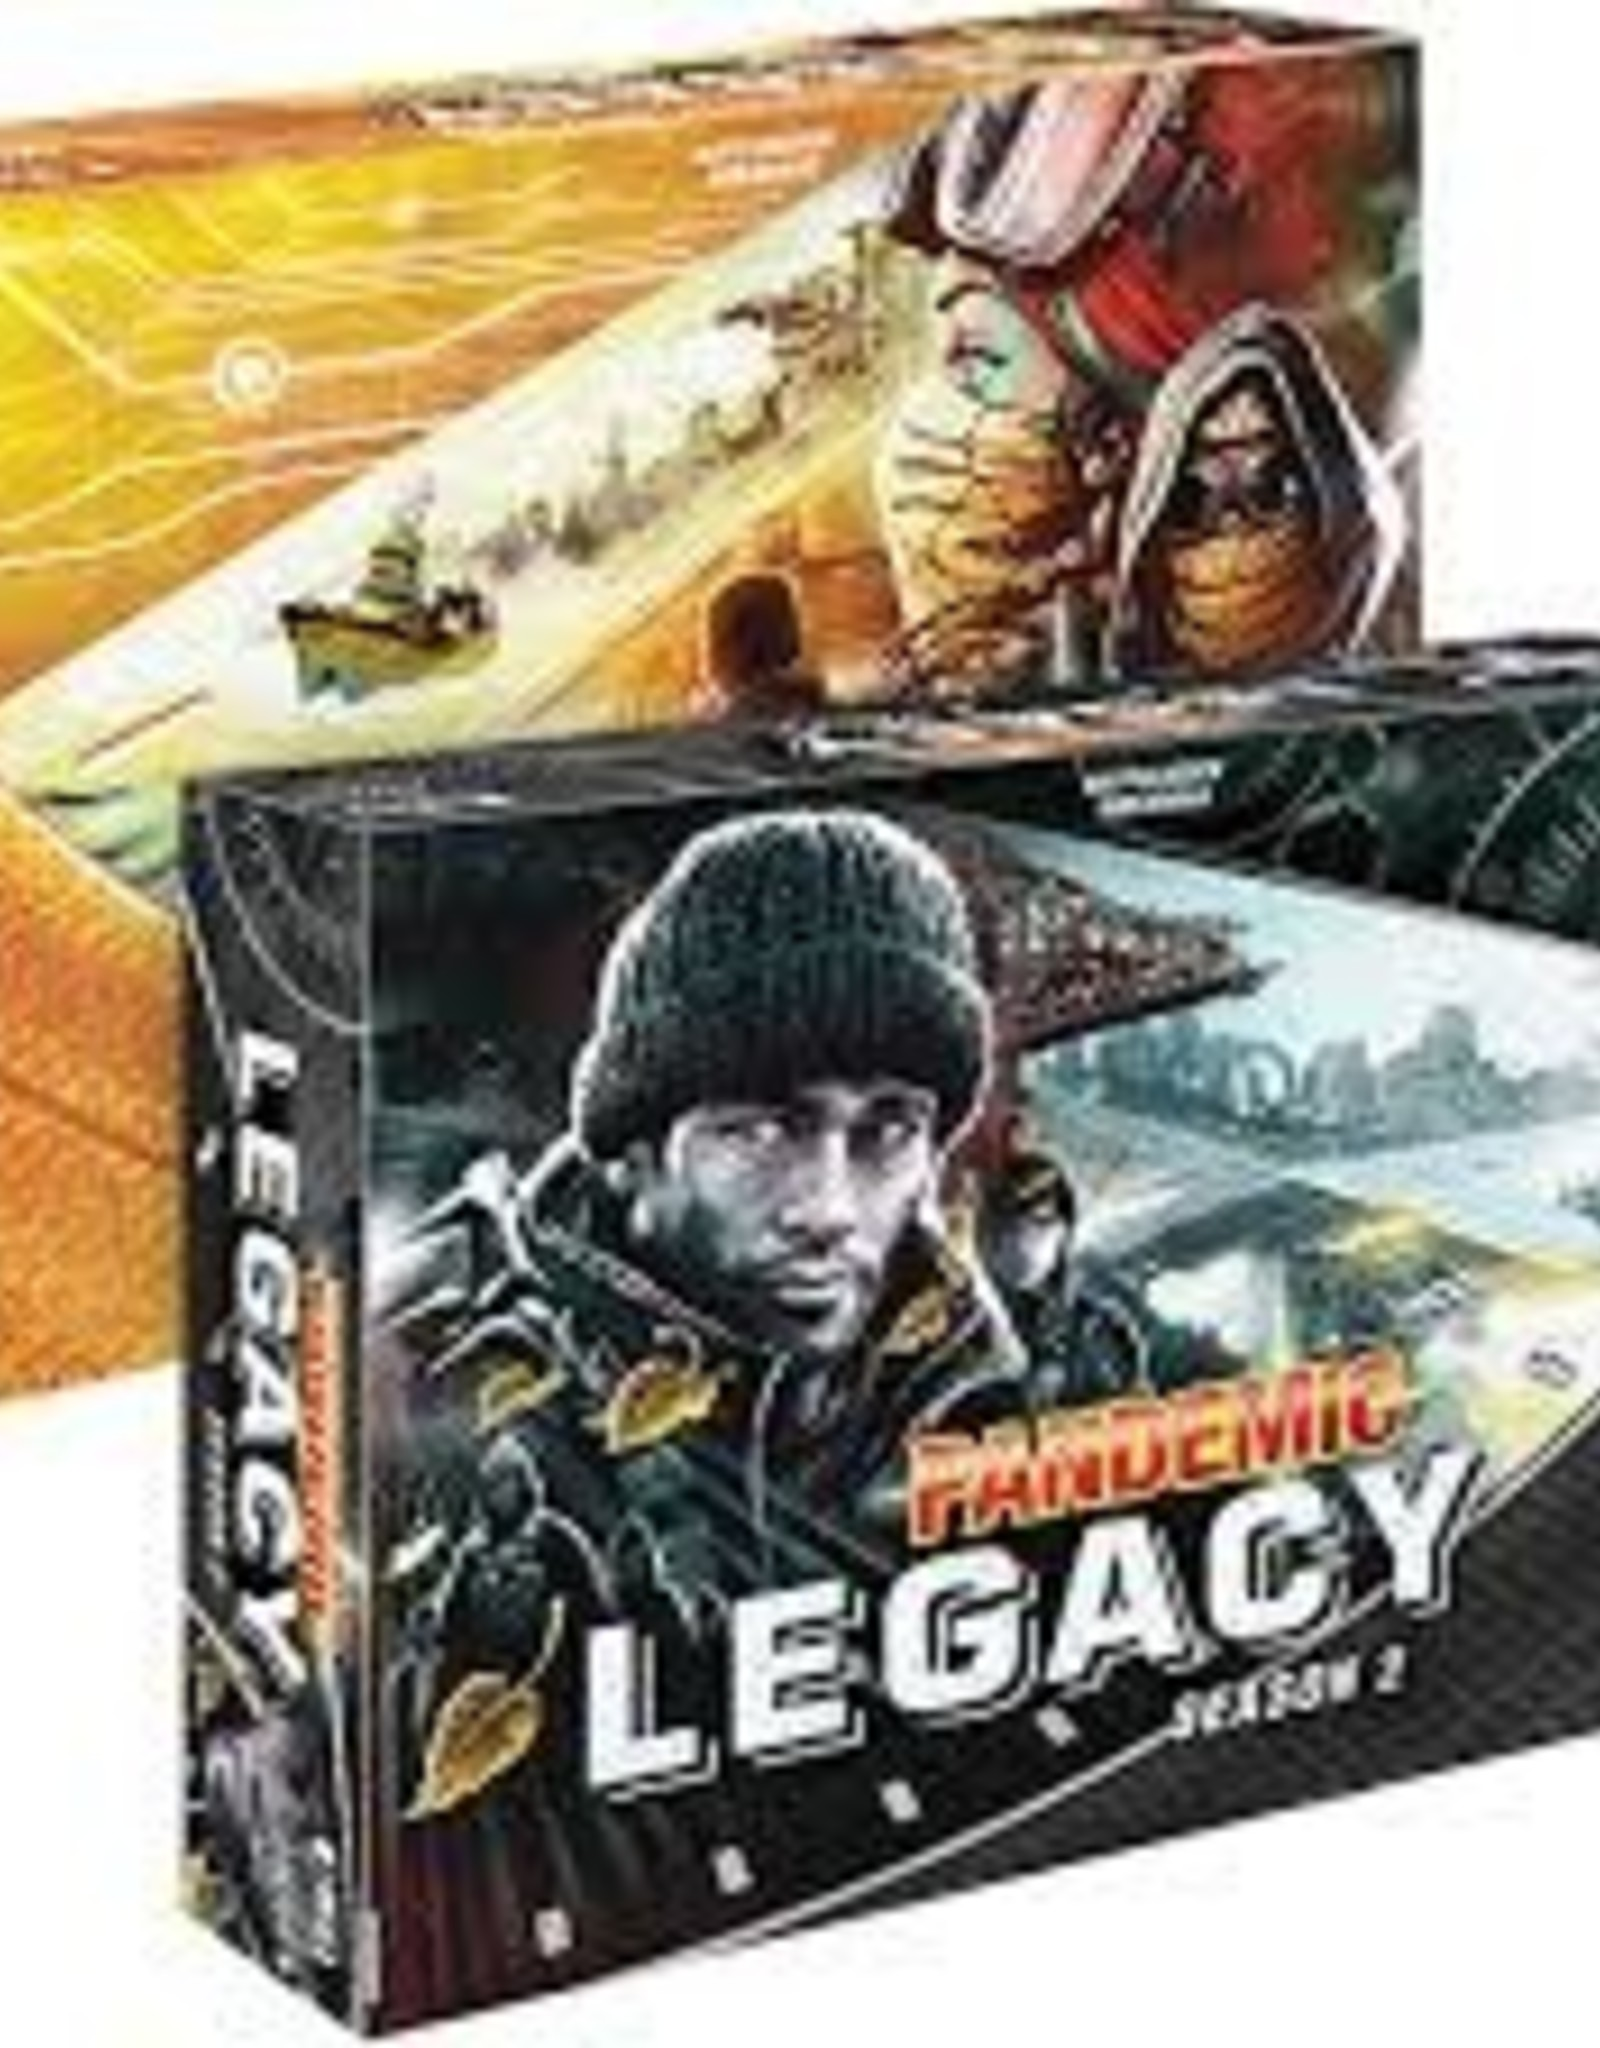 Pandemic legacy season 2 game